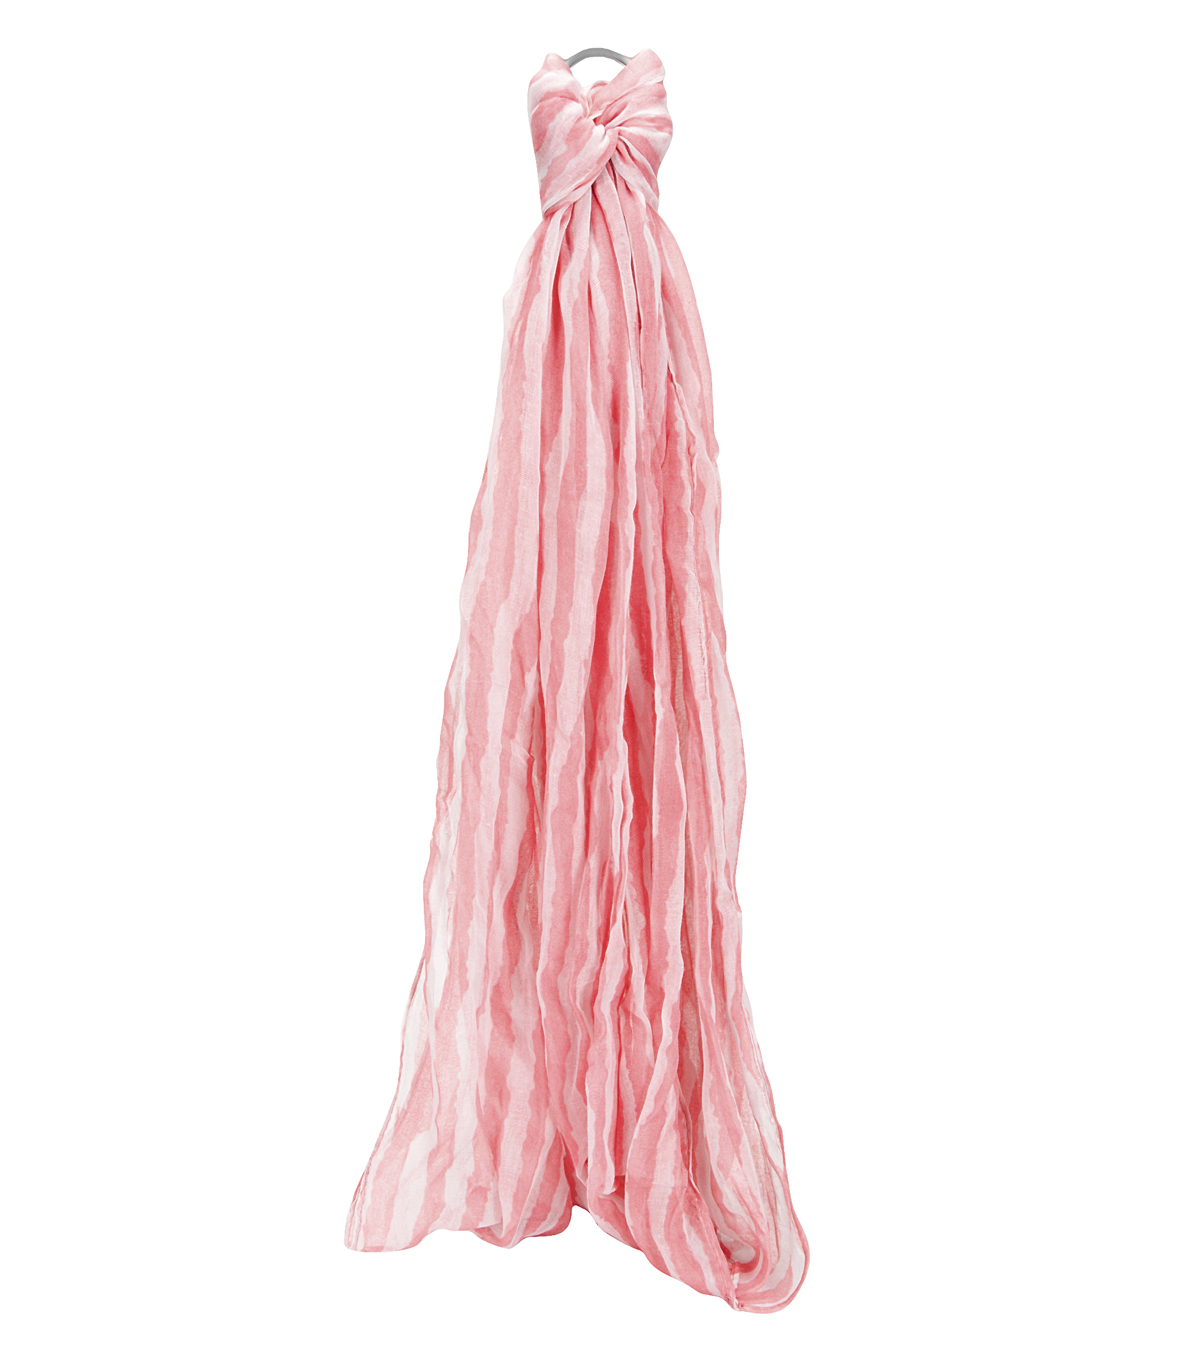 Oxford Street Jewelry Co. Pink & White Striped Infinity Scarf